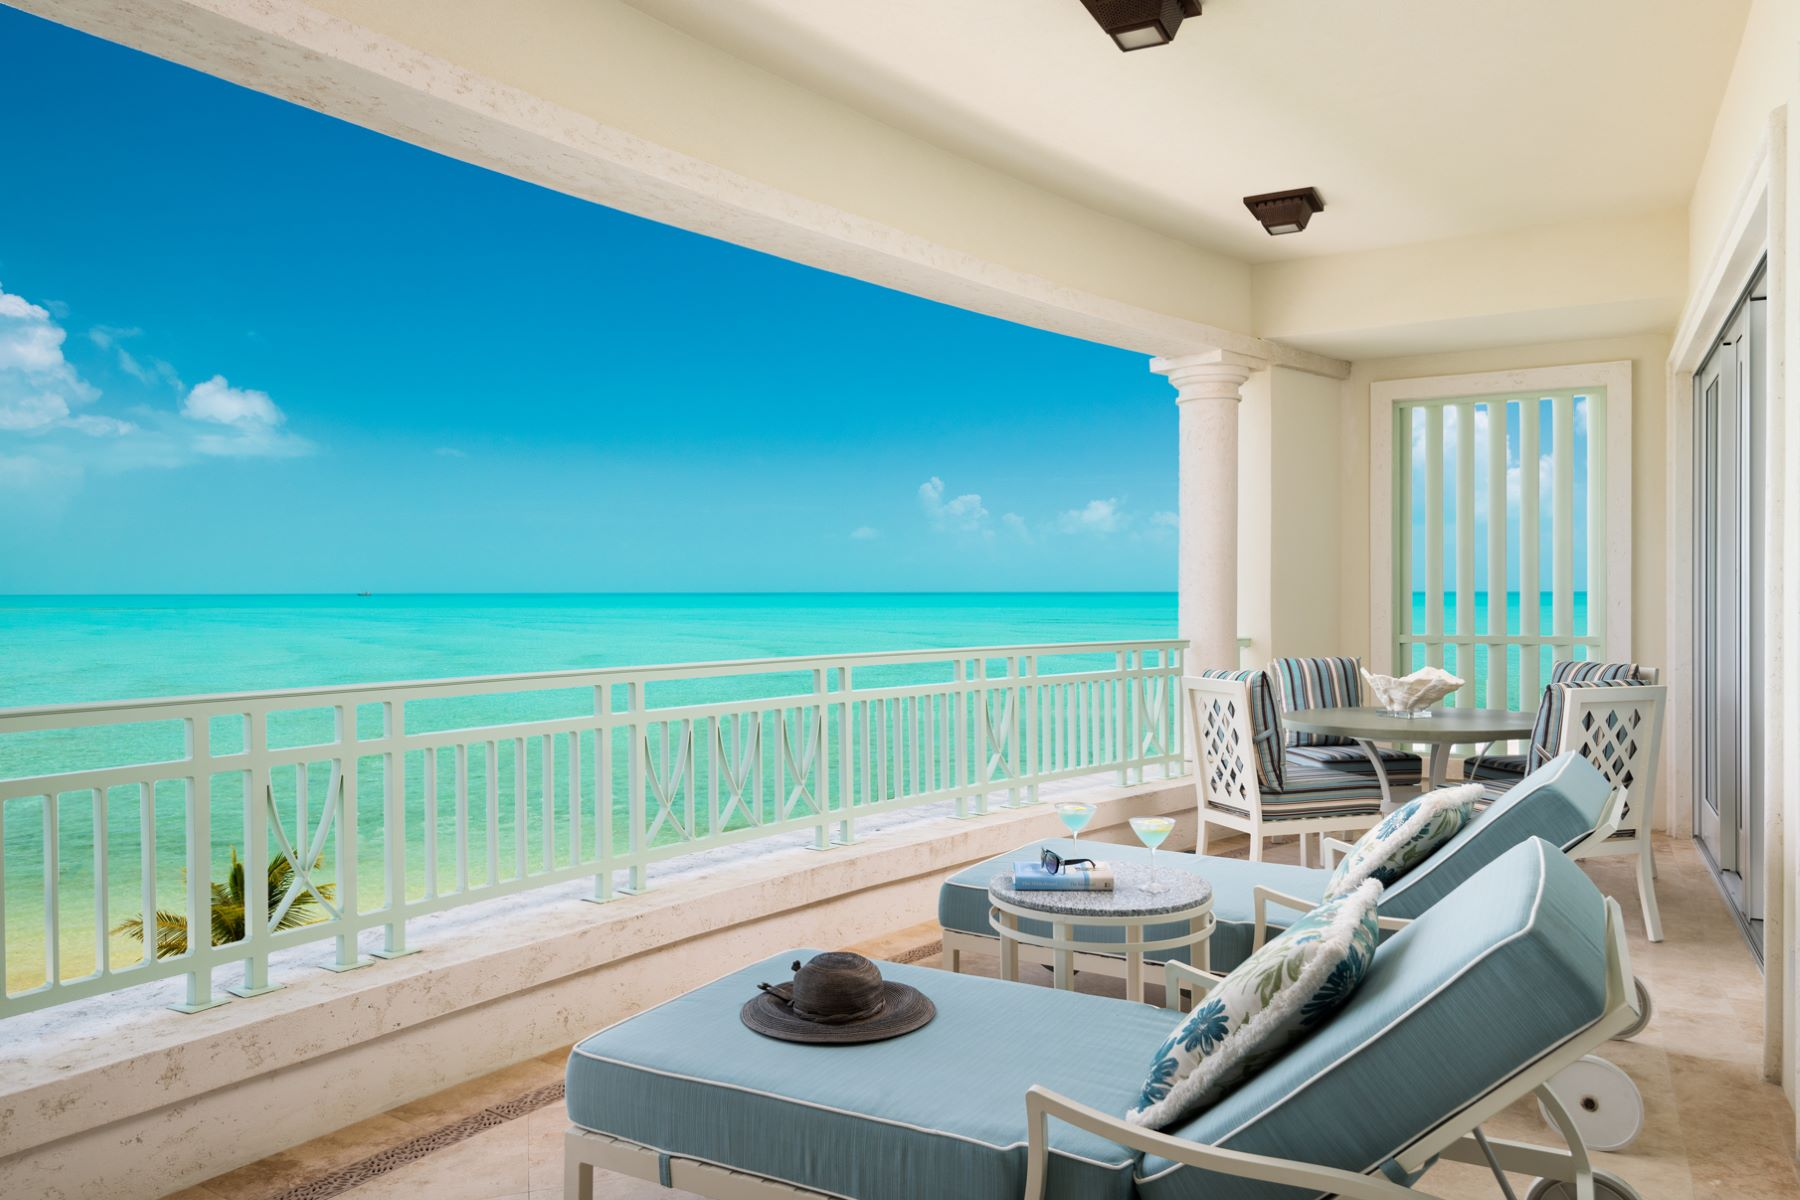 Additional photo for property listing at The Shore Club 1307.08.09 The Shore Club, 1307.08.09 Long Bay, Providenciales TKCA 1ZZ Turks And Caicos Islands